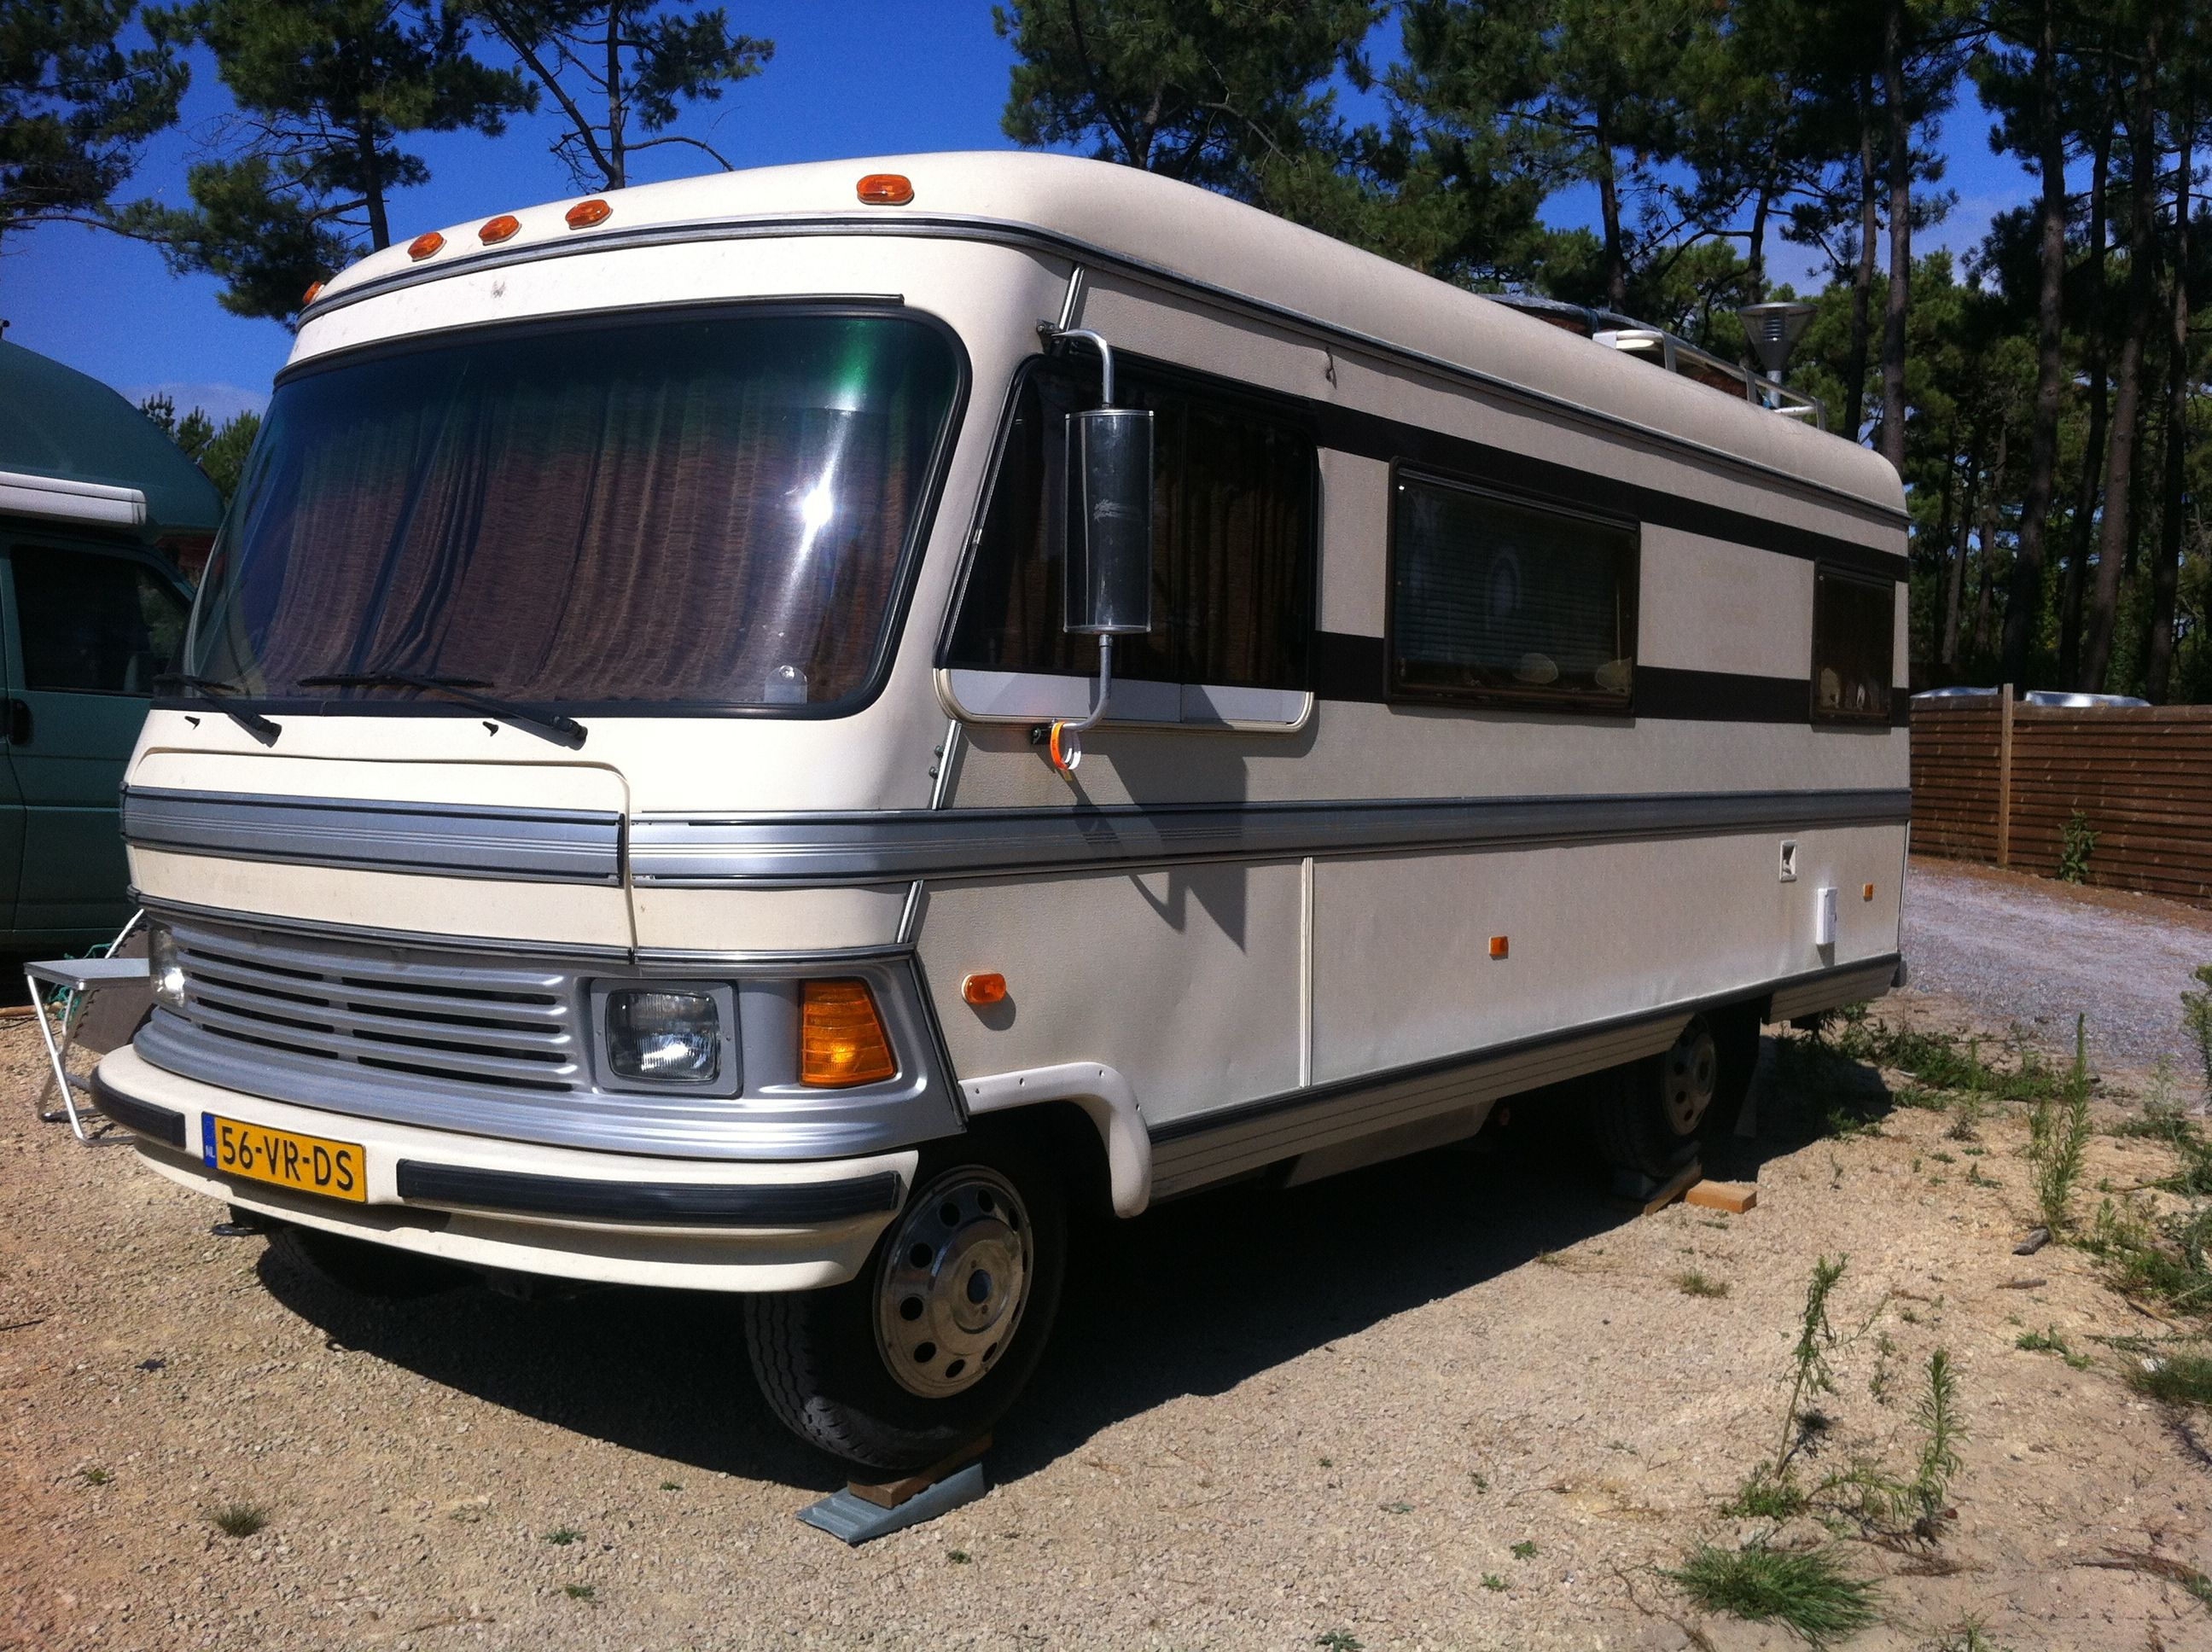 Mooie eighties Hymer met ster! Recreational Vehicle, Rv, Camper Van,  Motorhome,